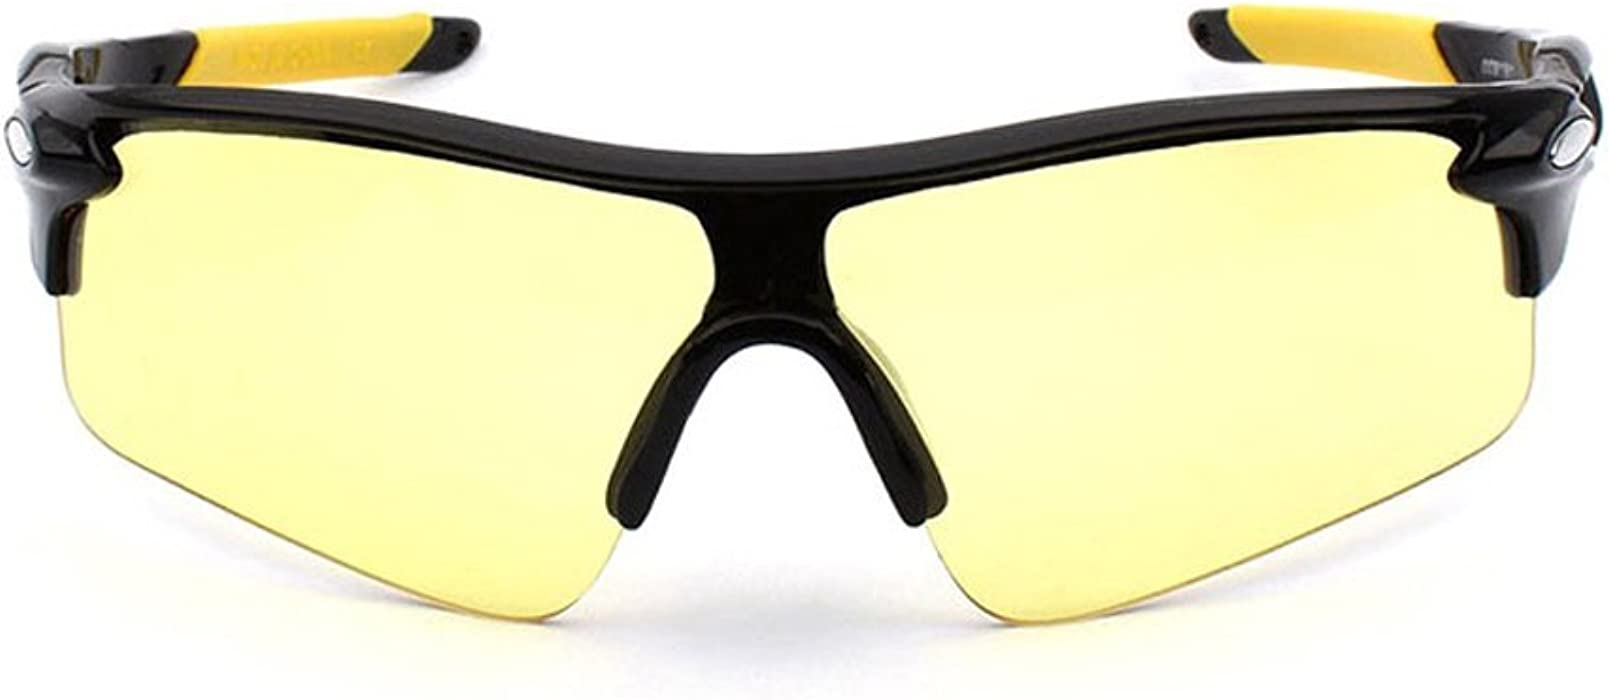 52cf105e04a Novadab Tour De France Ultra-Stylish Sporty Sunglasses ...